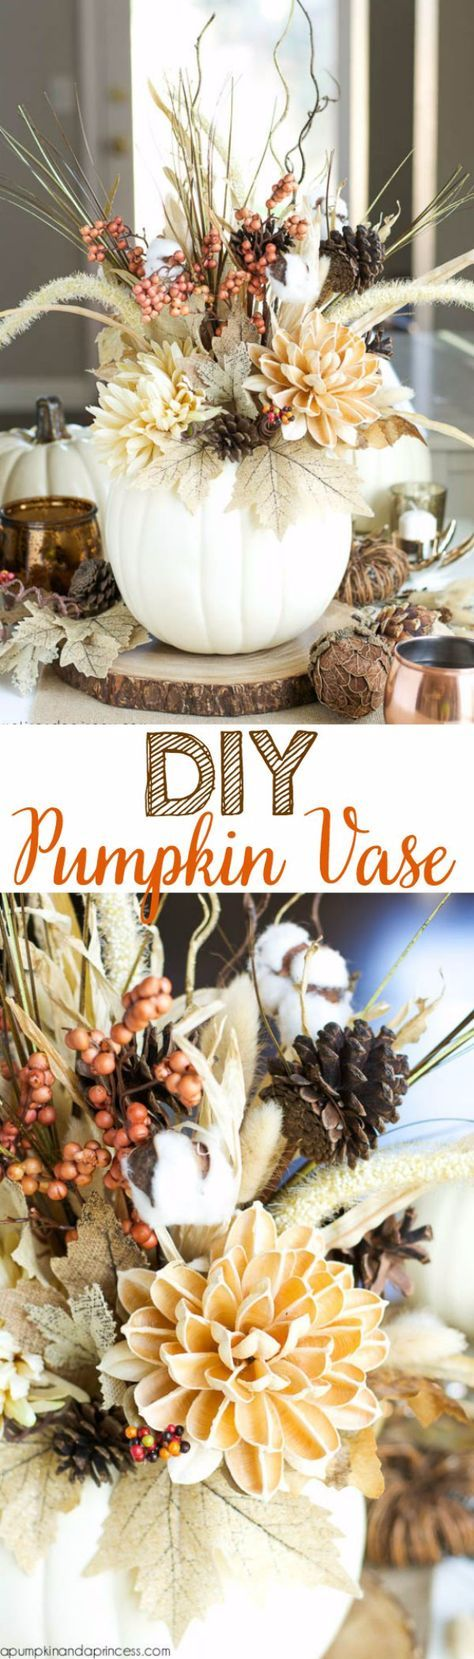 34 Pumpkin Decorations For Fall - DIY Pumpkin Vase - Easy DIY Pumpkin Decor Ideas for Home, Yard, Outdoors - Cool Pumpkin Decorating Ideas for Adults and Kids Party, Creative Crafts With Paint, Glitter and No Carve Projects for Halloween http://diyjoy.com/pumpkin-decorations-fall